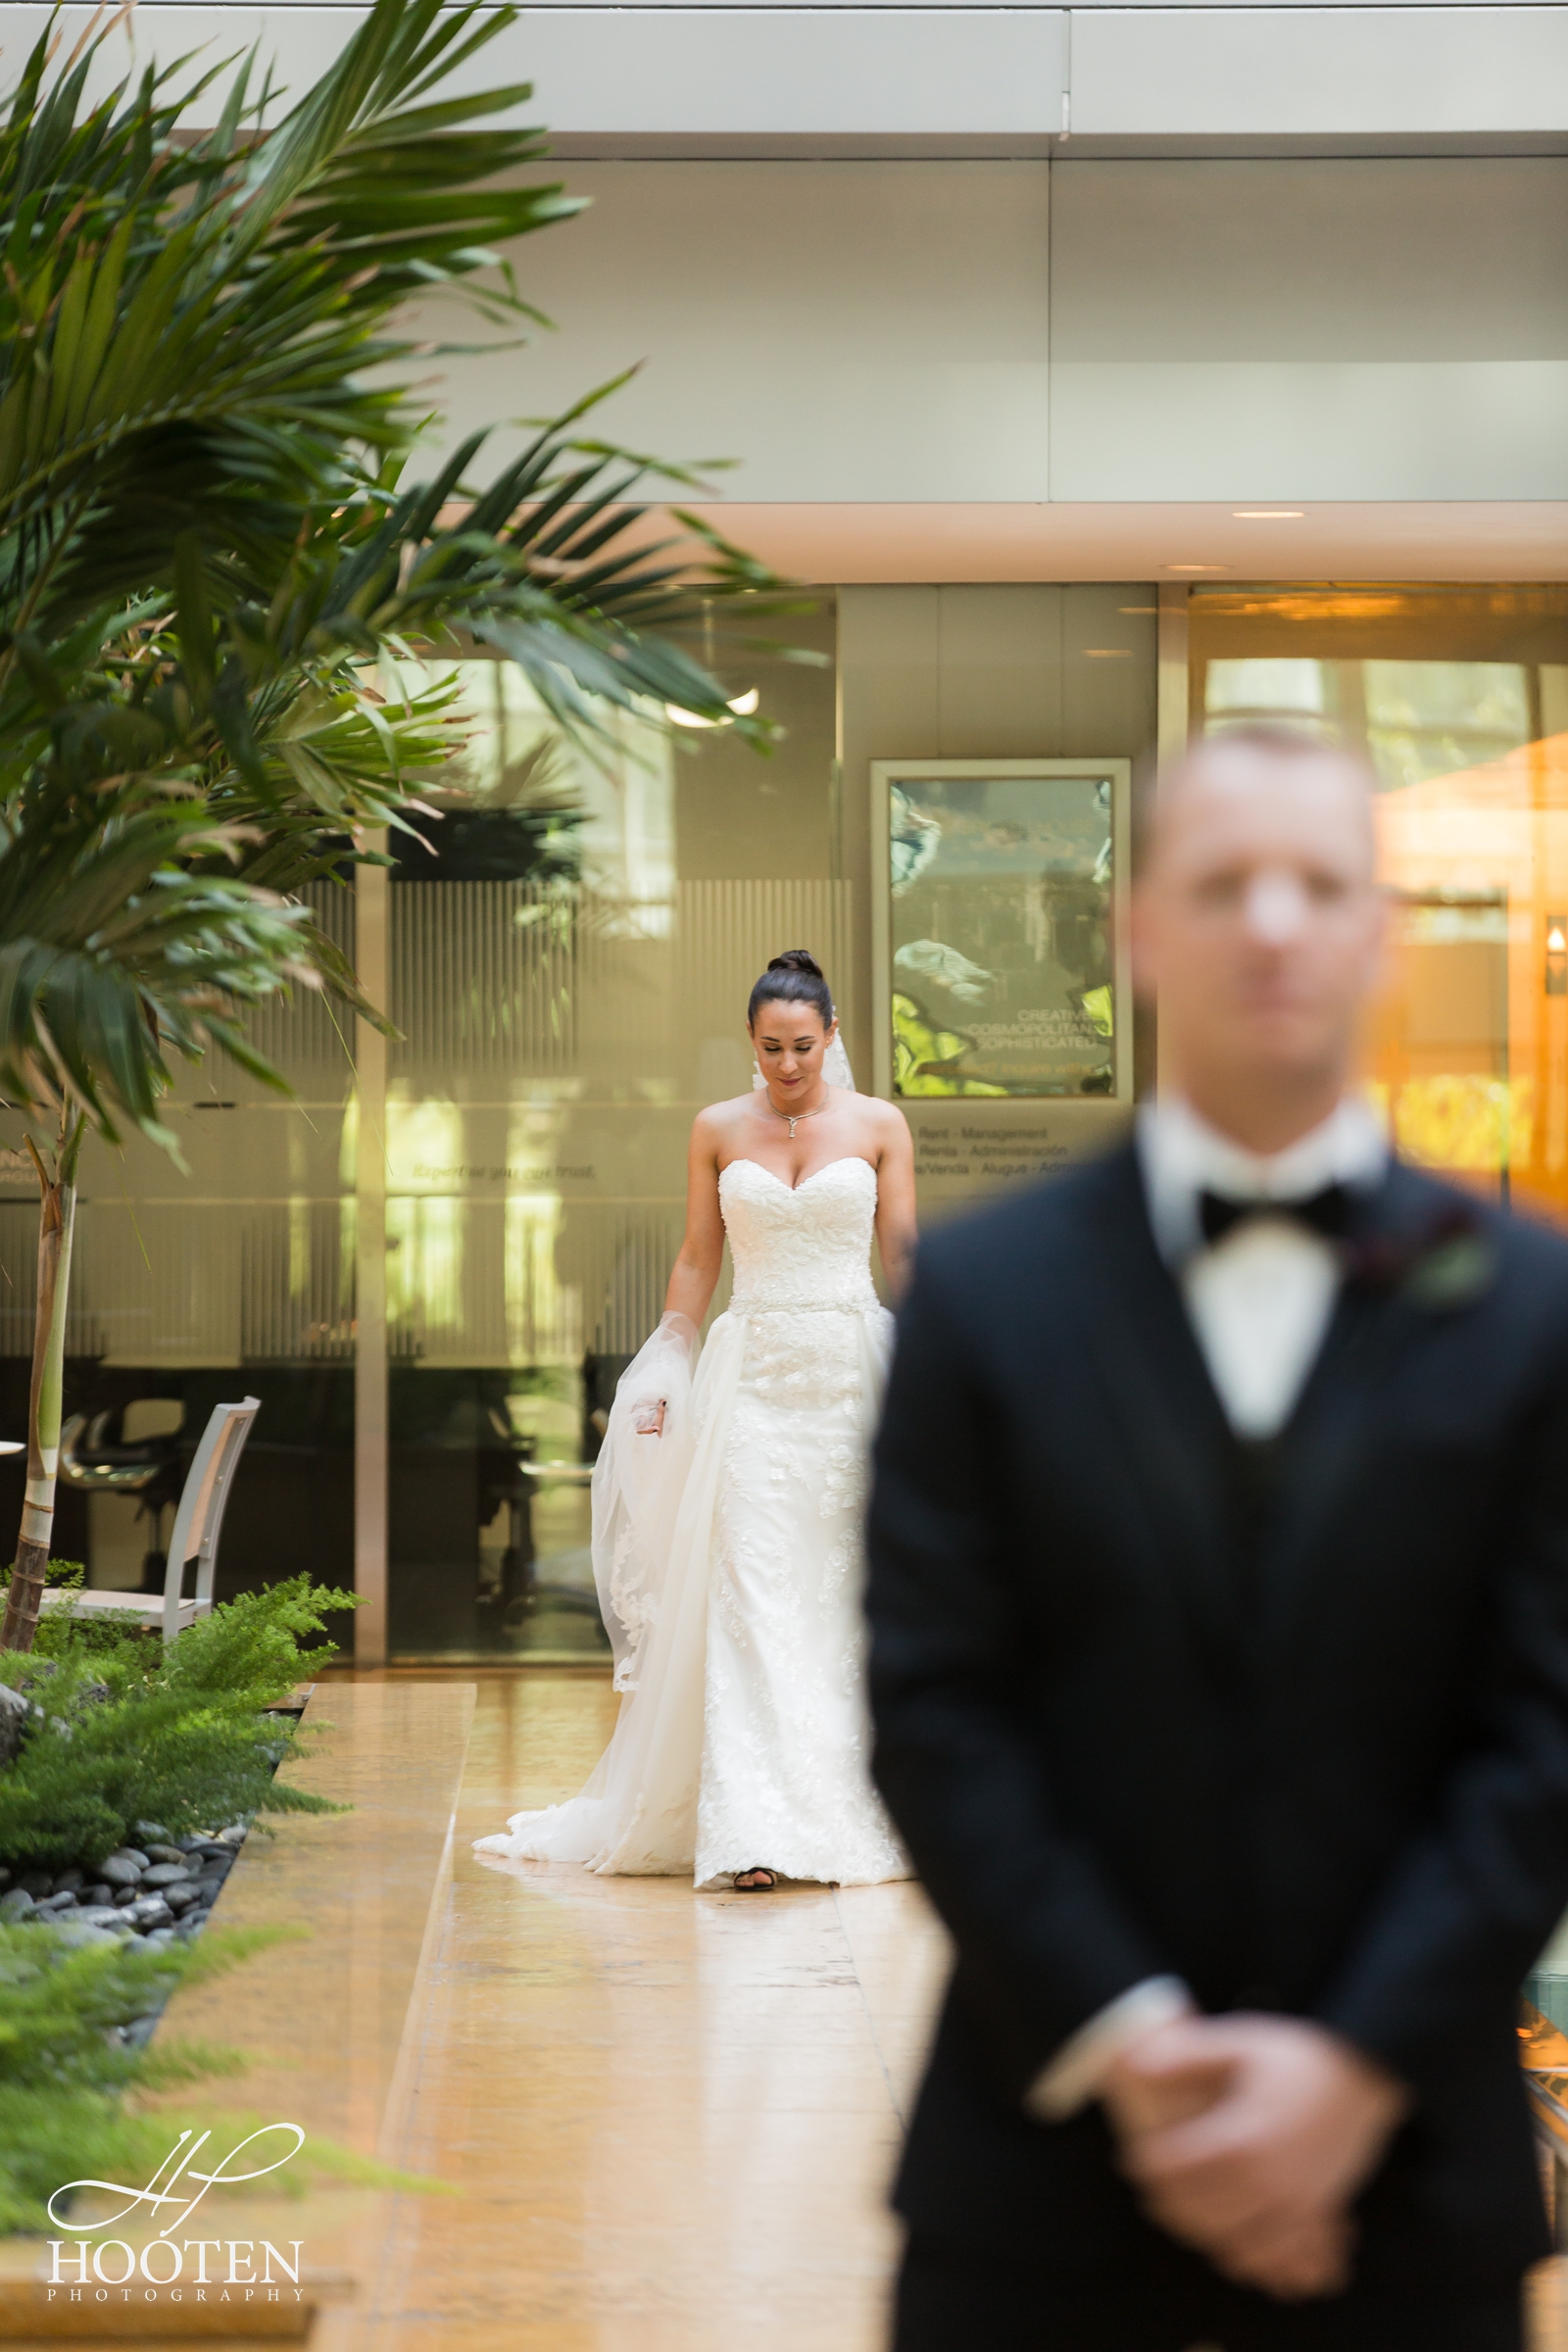 029.Conrad-Miami-Hotel-Wedding-Hooten-Photography.jpg